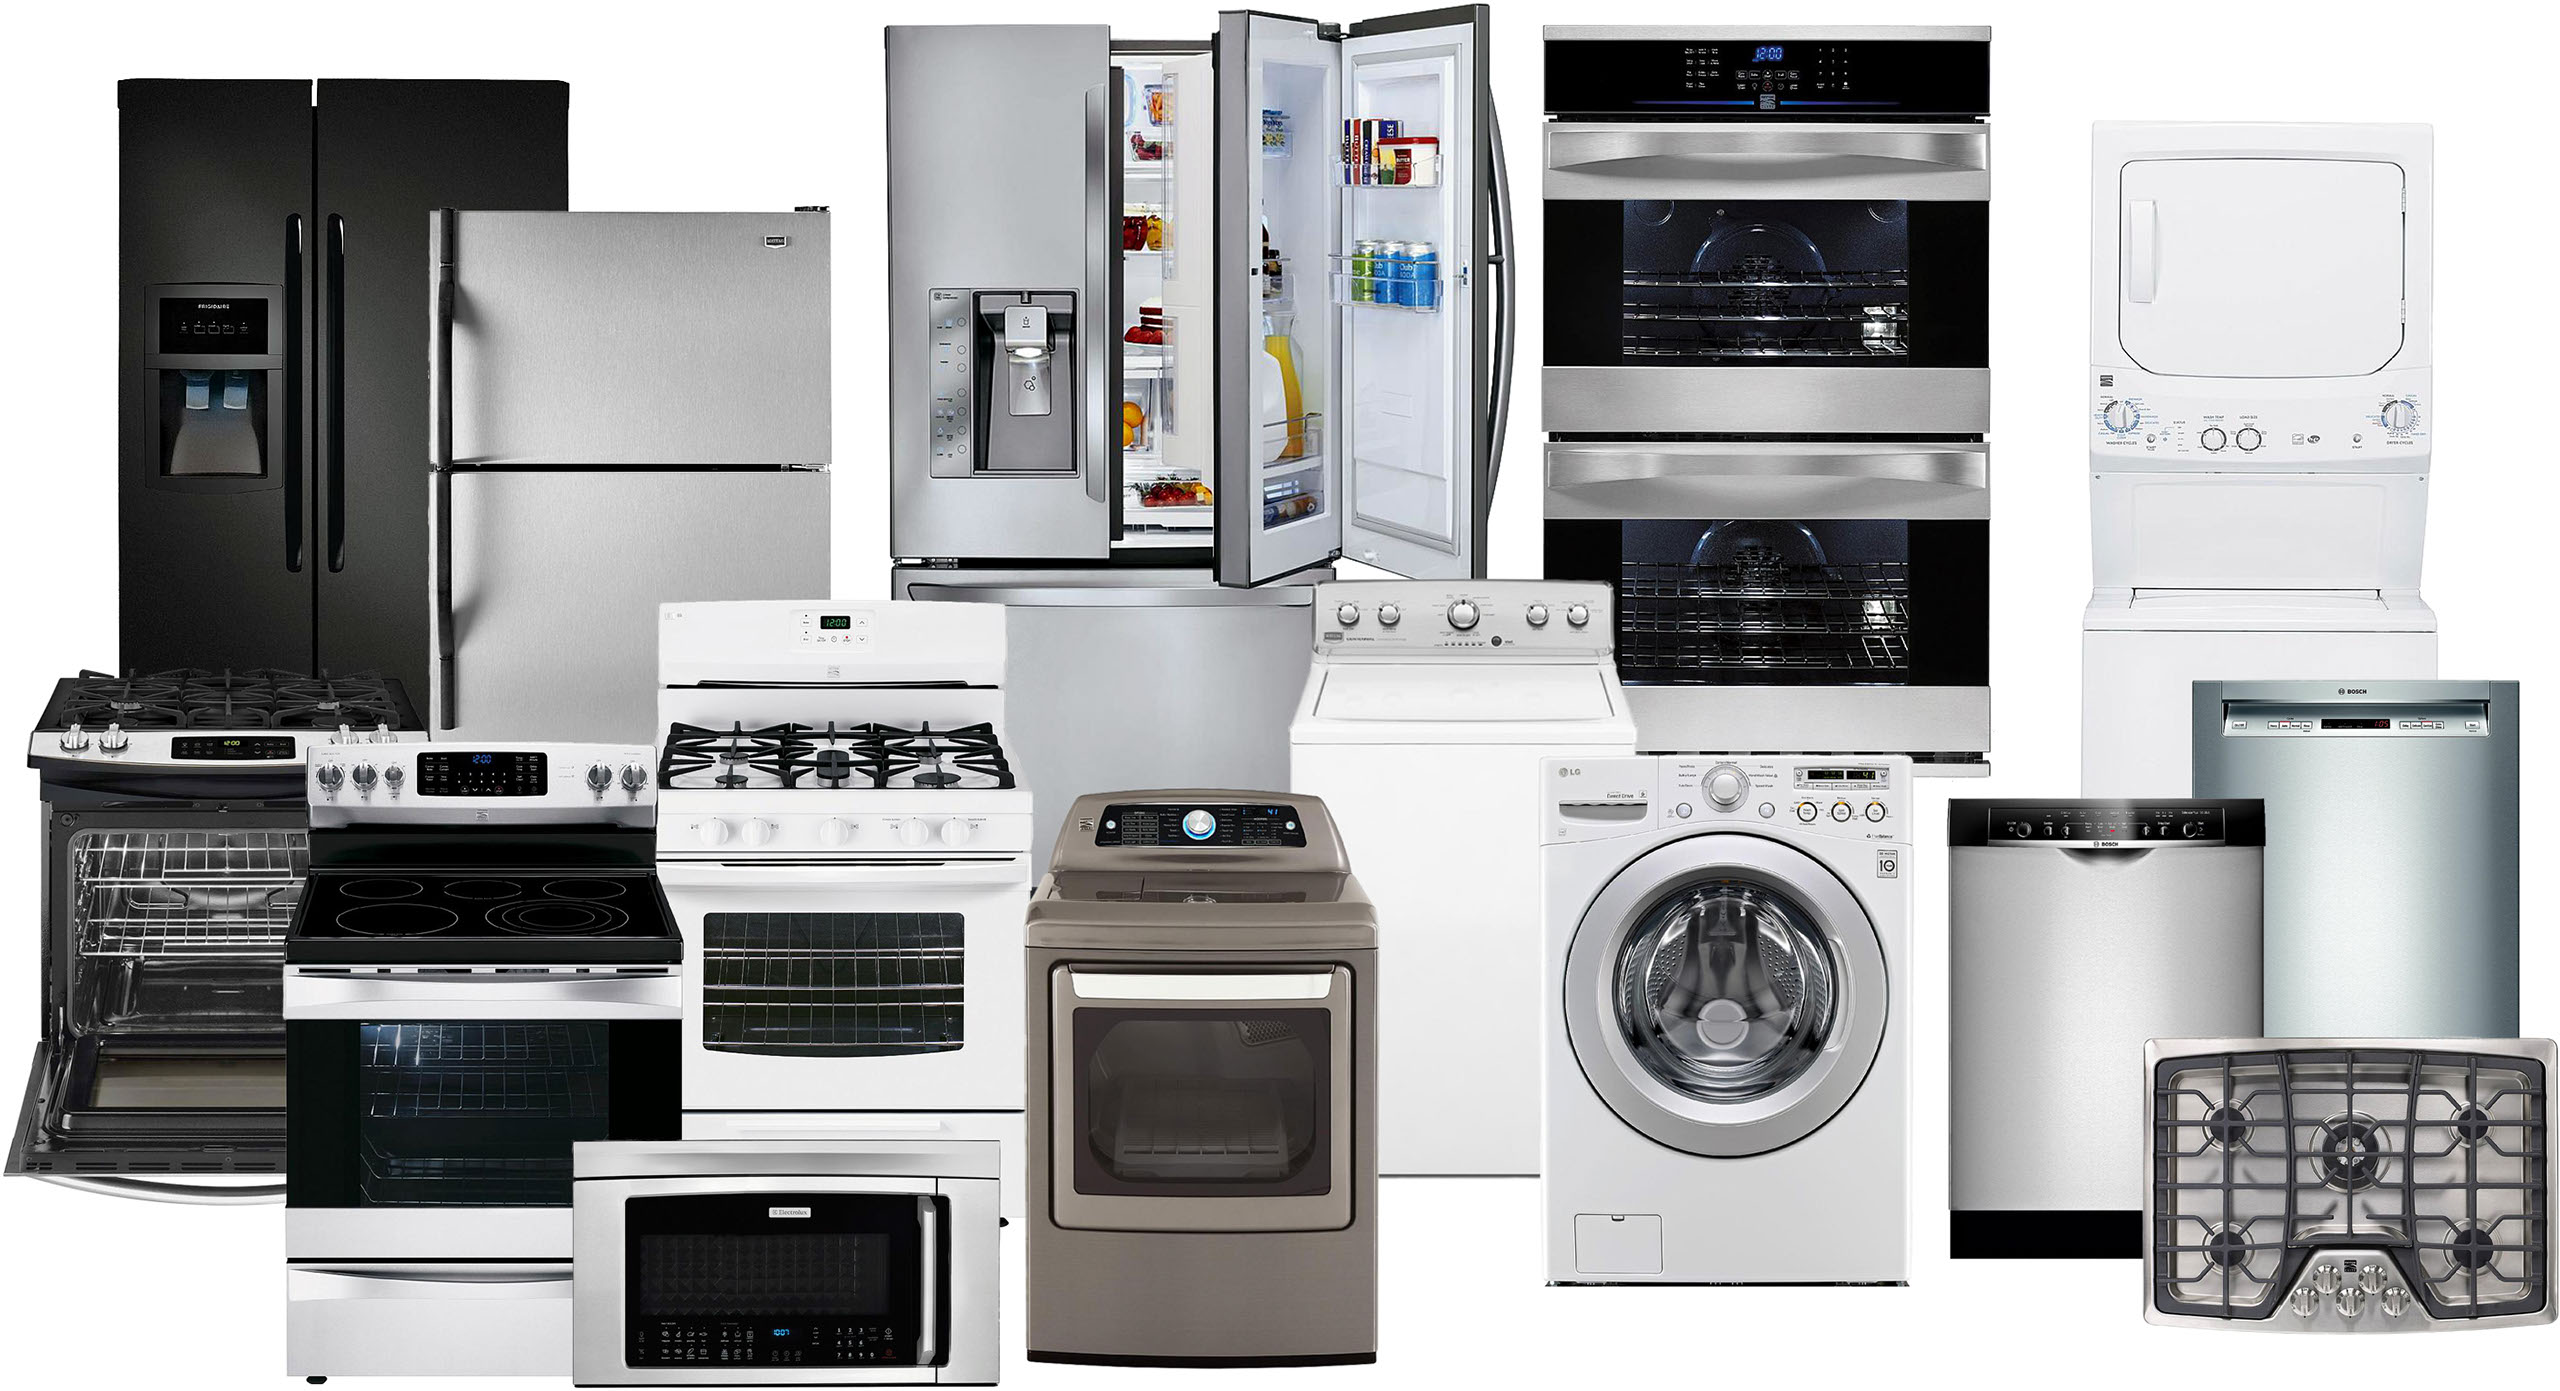 Essential Tips To Hire The Best Appliance Repair Company Homeofarticle